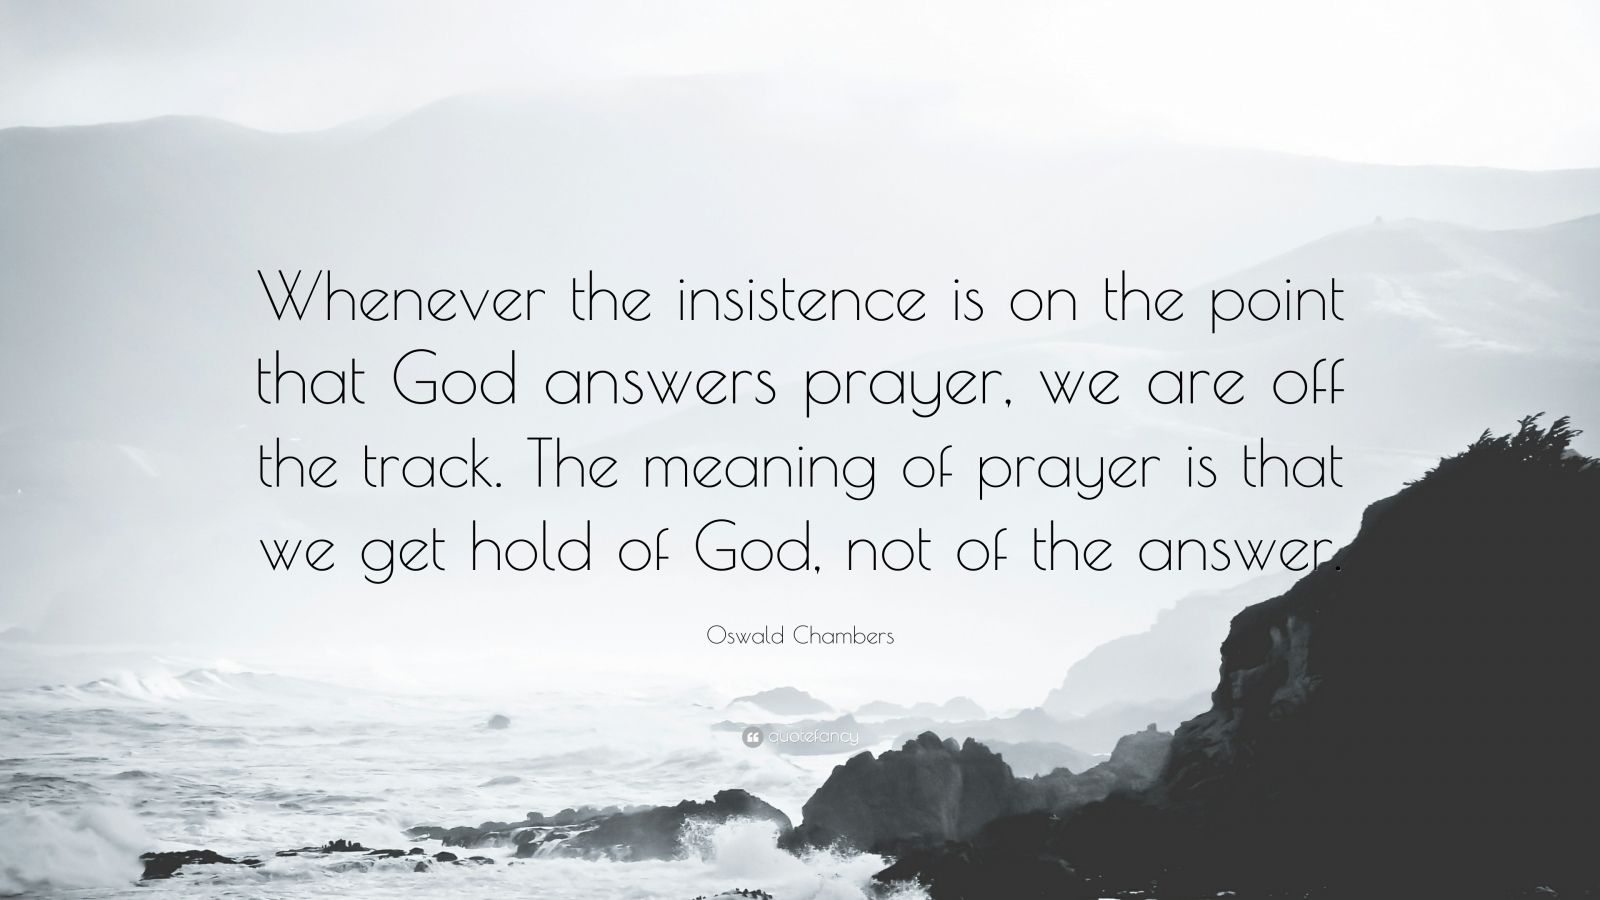 """Oswald Chambers Quote: """"Whenever the insistence is on the point that God answers prayer, we are off the track. The meaning of prayer is that we get hold of God, not of the answer."""""""